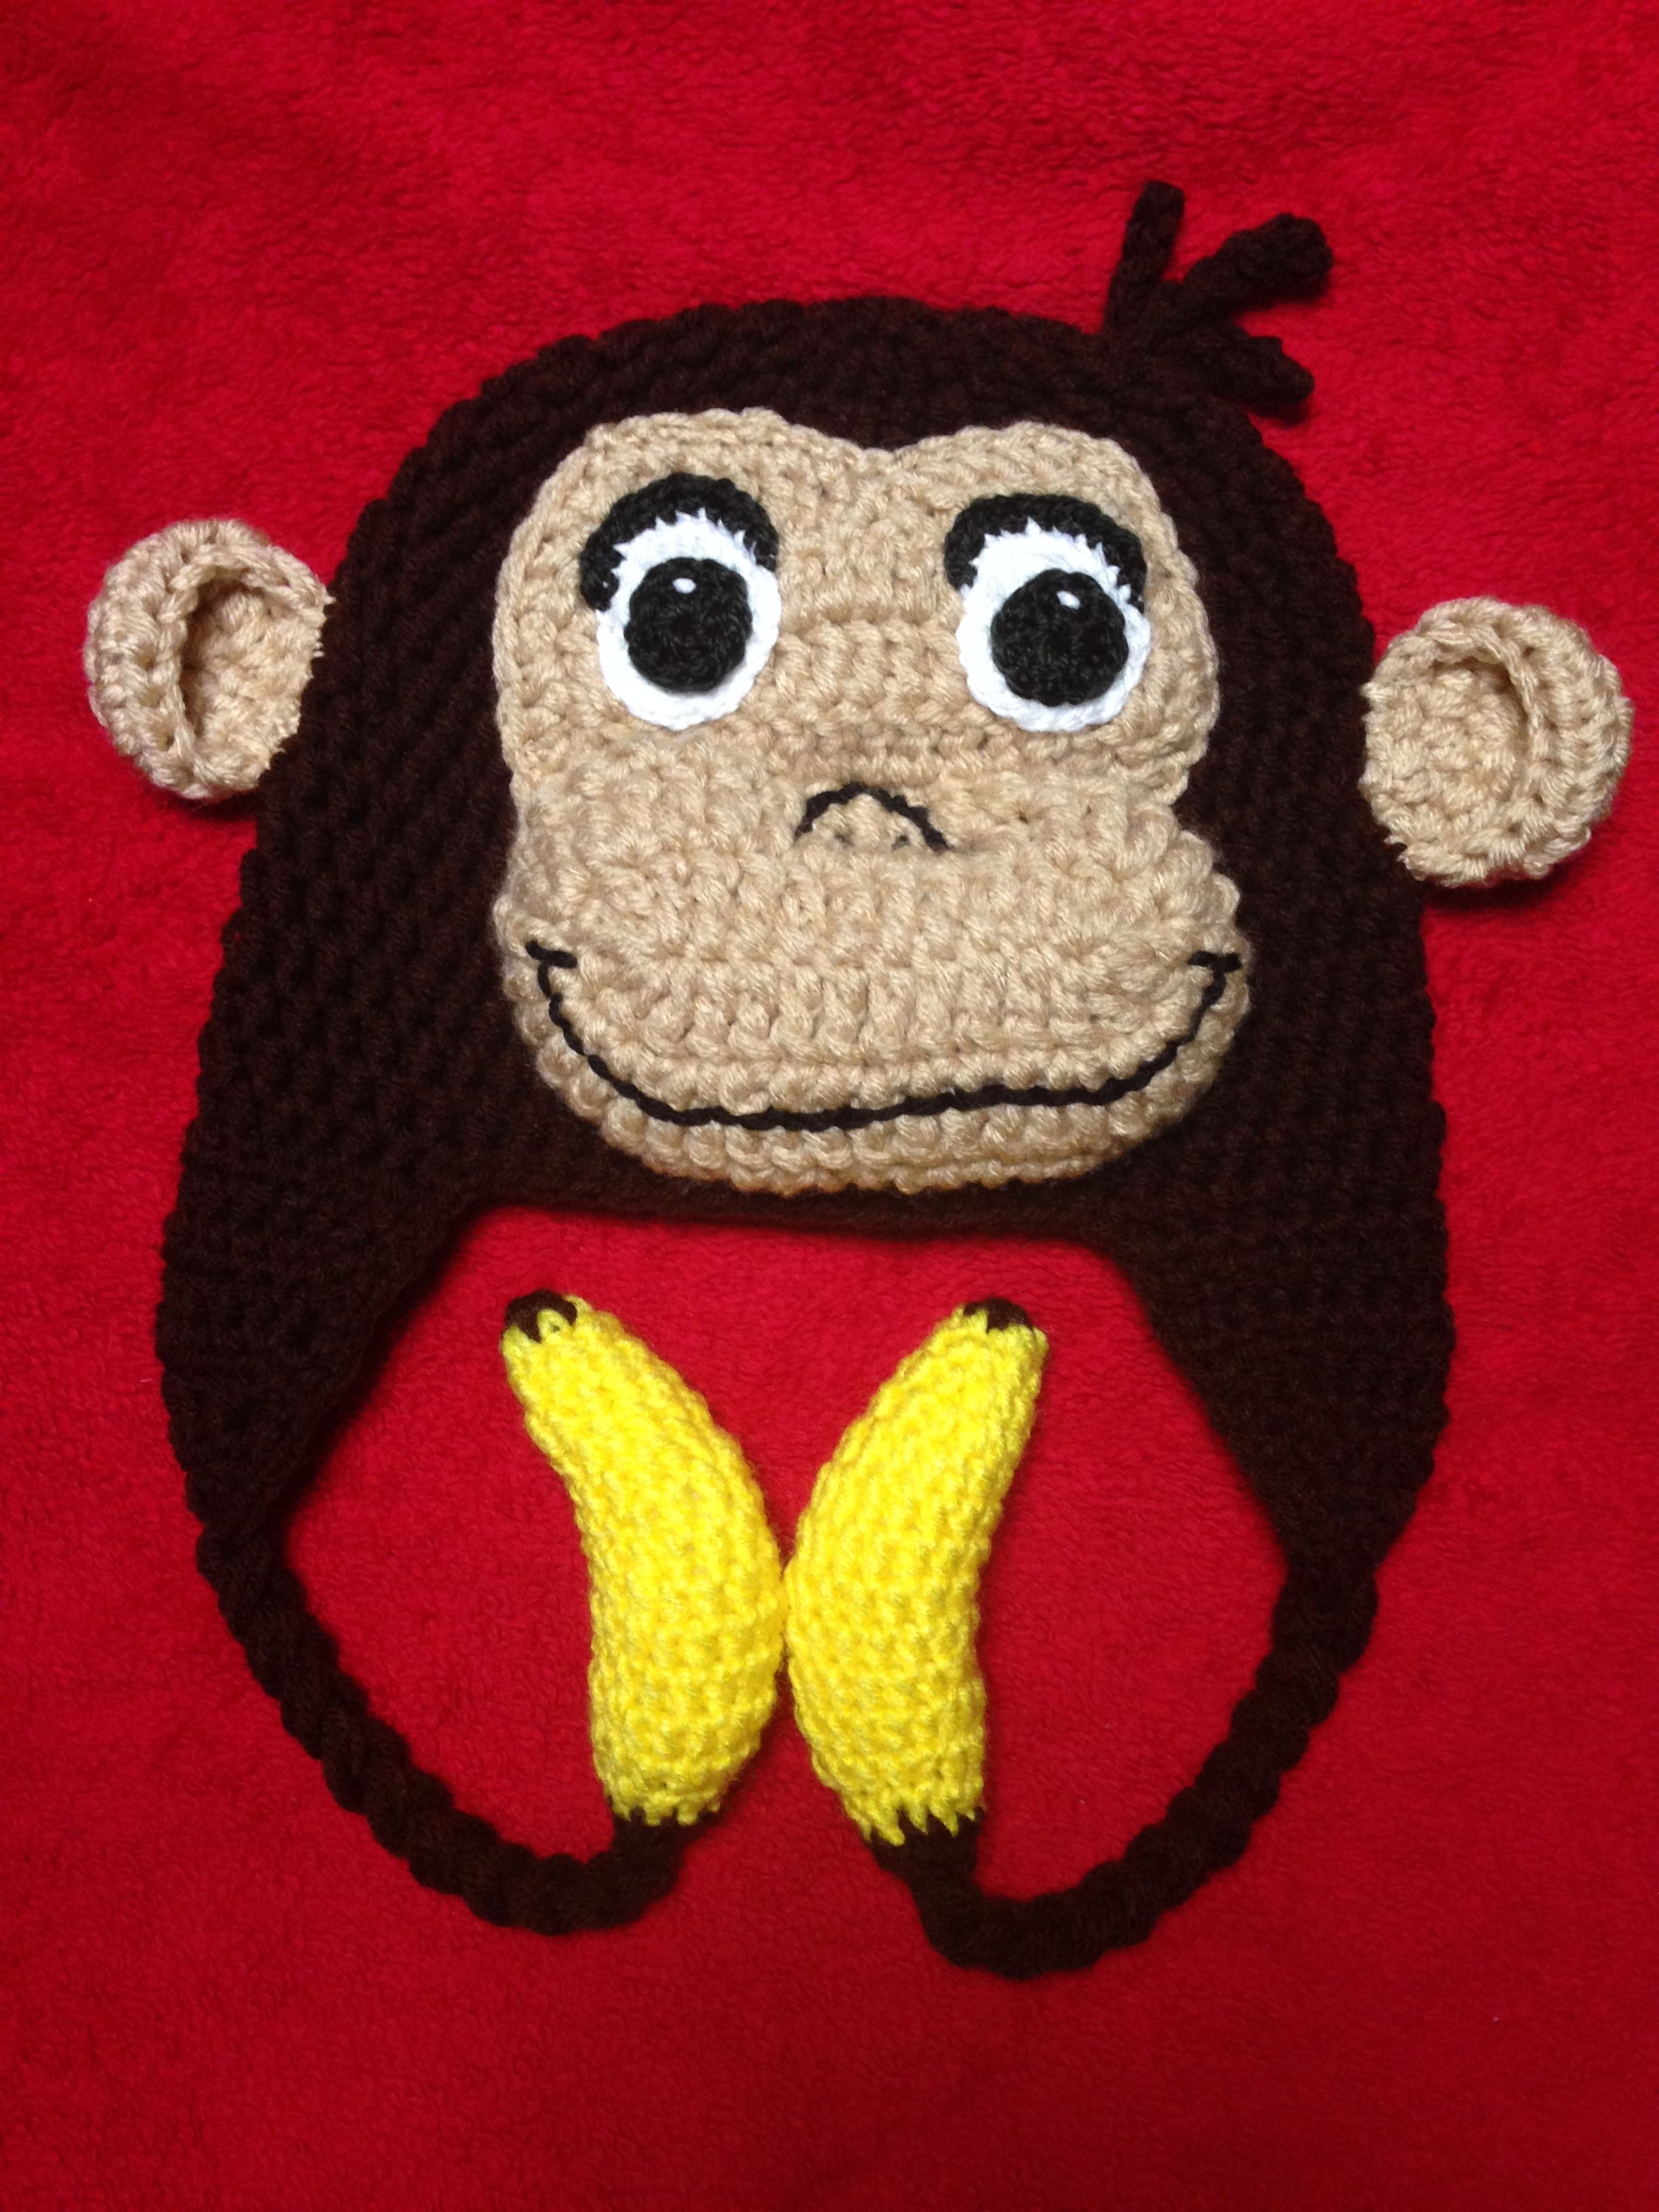 Crochet Monkey Hat With Bananas Curious George Inspired My